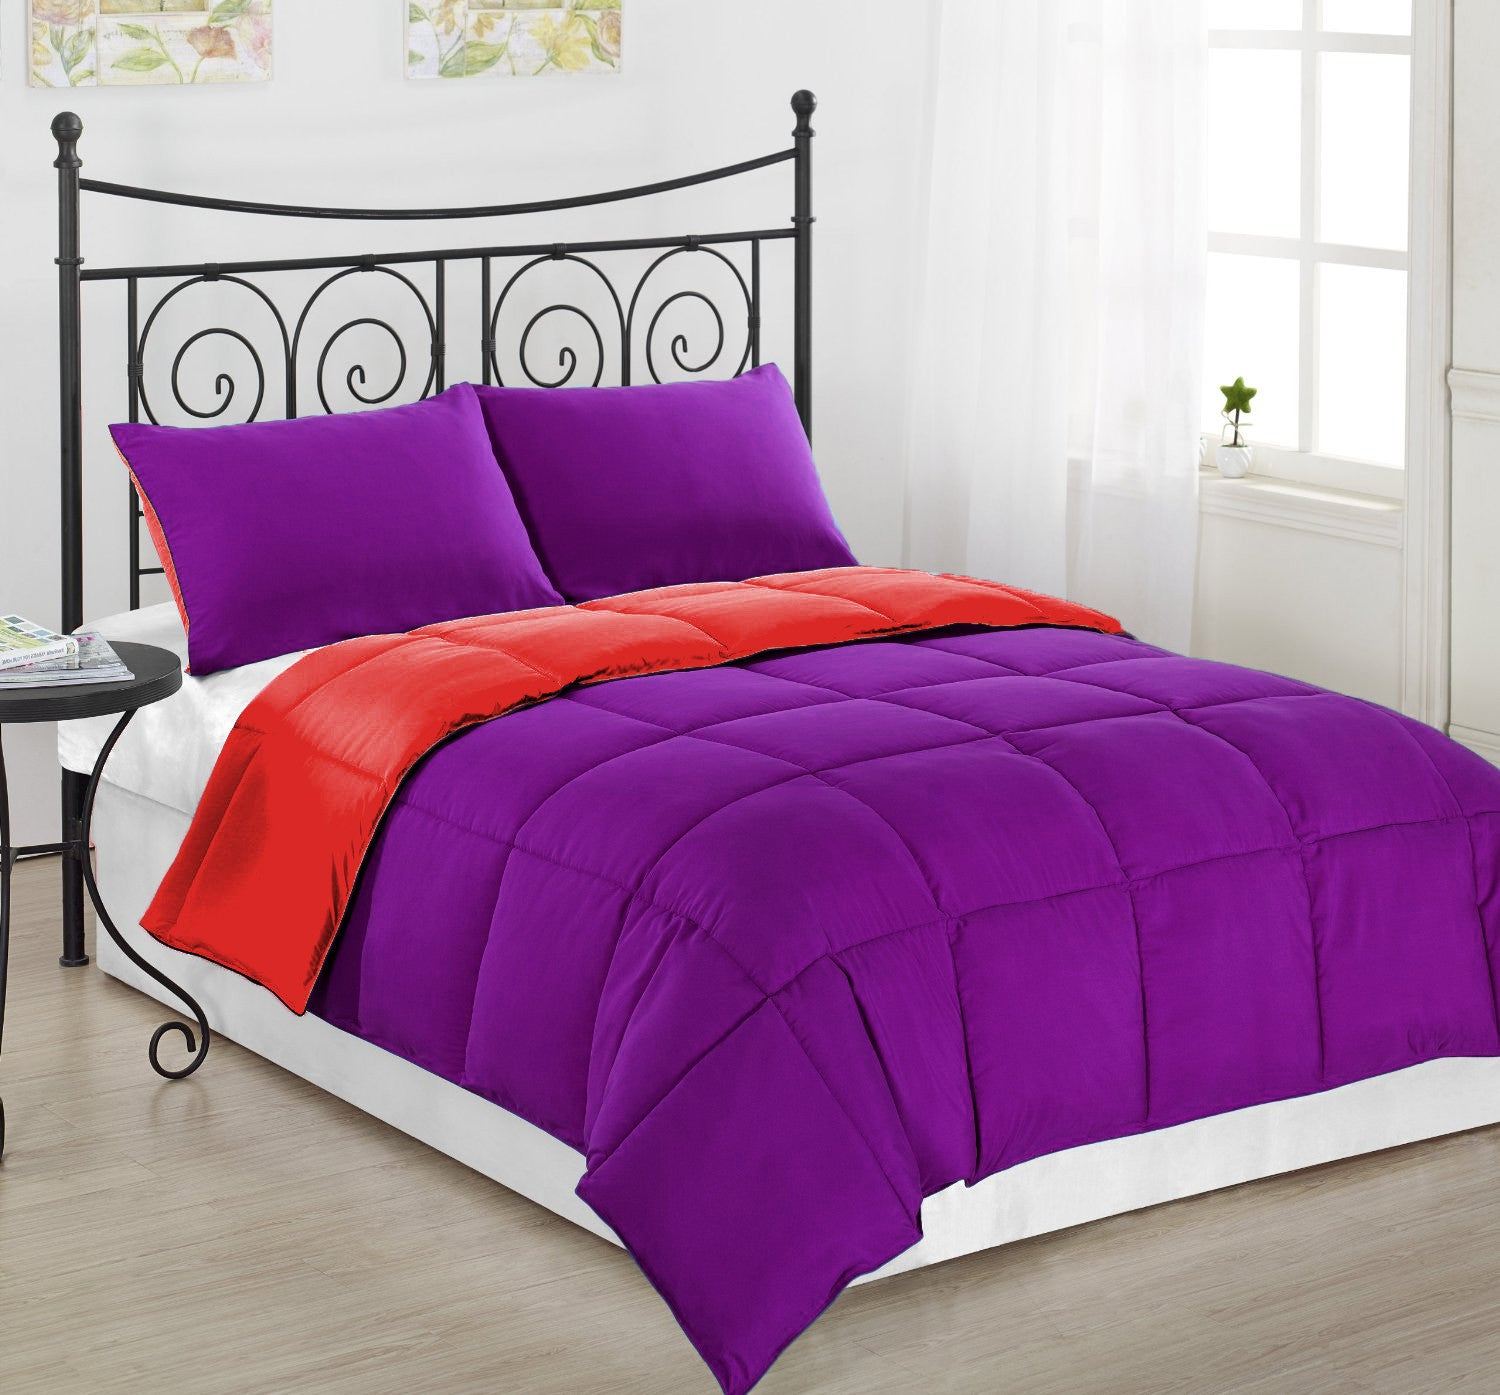 3 pc Reversible Purple and Red Alternative Down Comforter